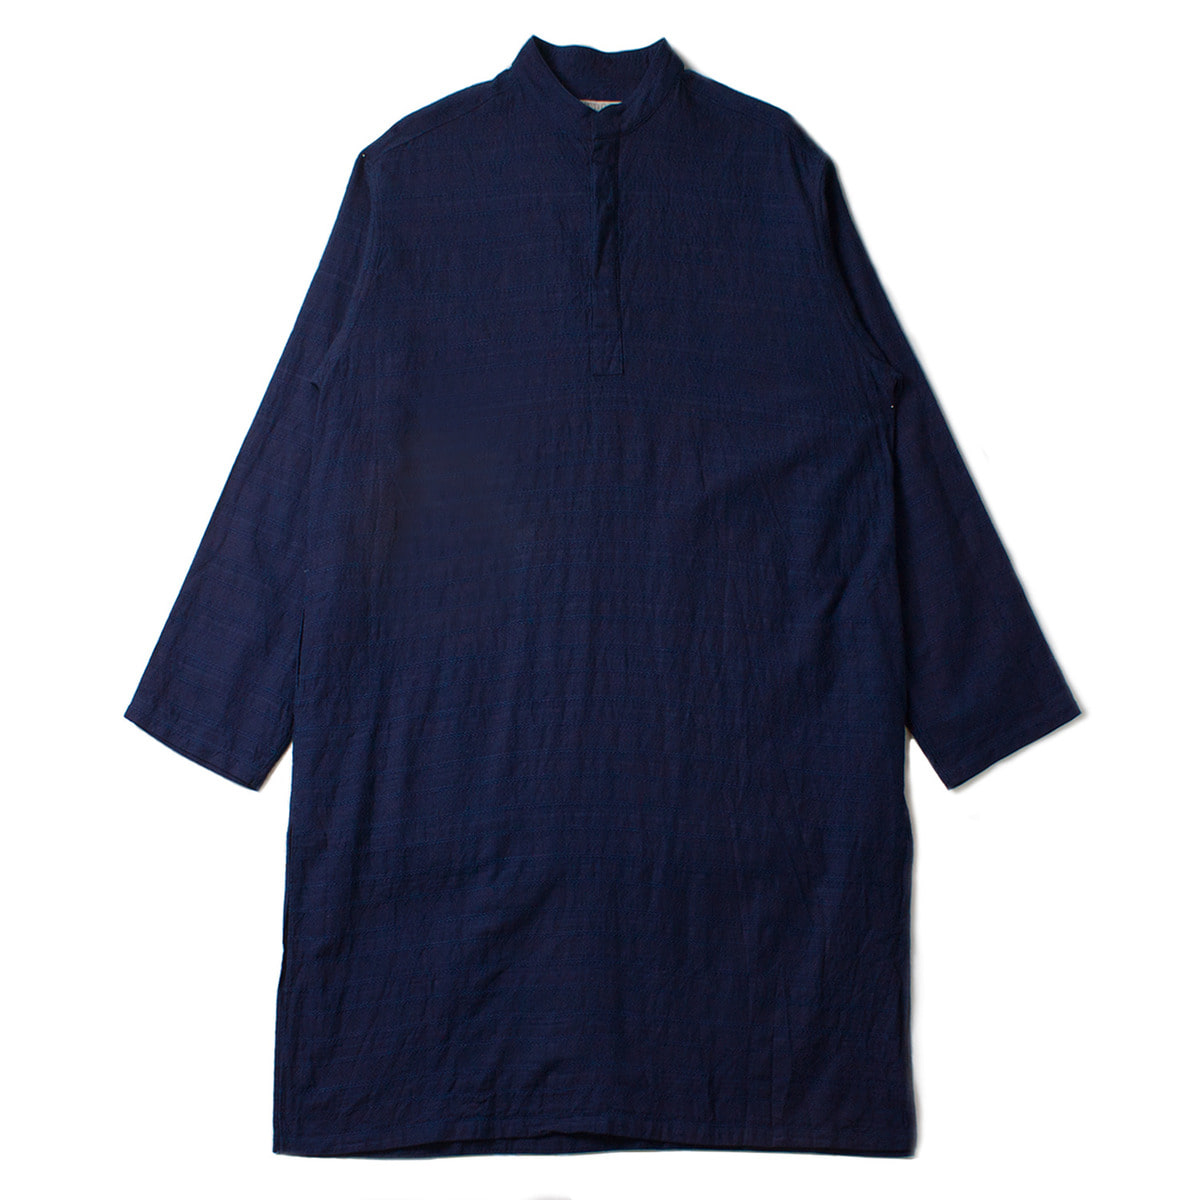 [HAVERSACK] DOBBY CLOTH SHIRT 'INDIGO'